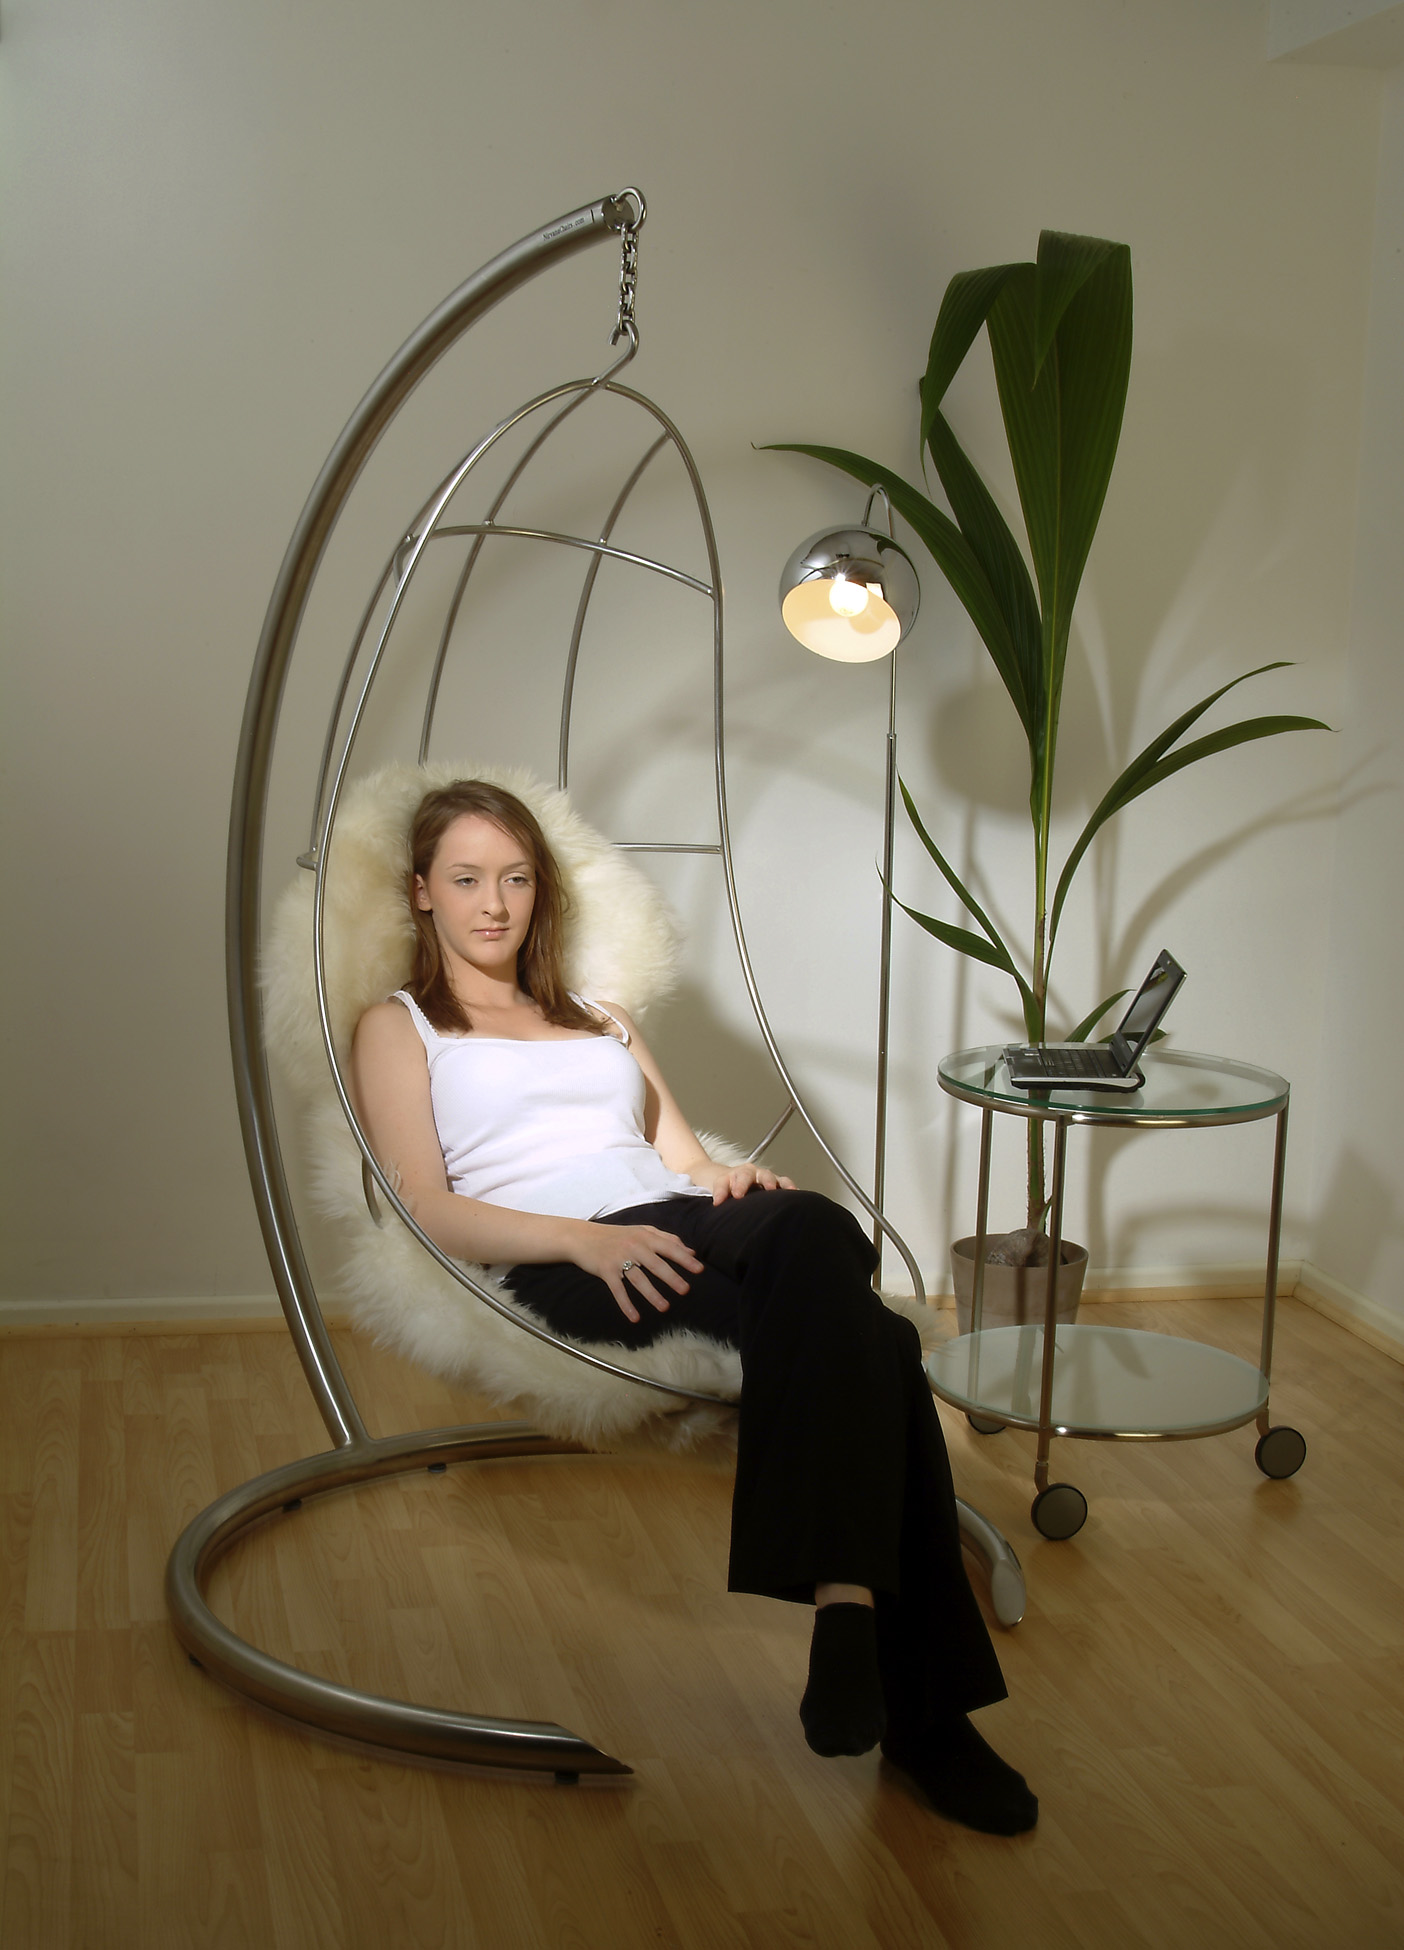 Della in Hug Hanging Chair